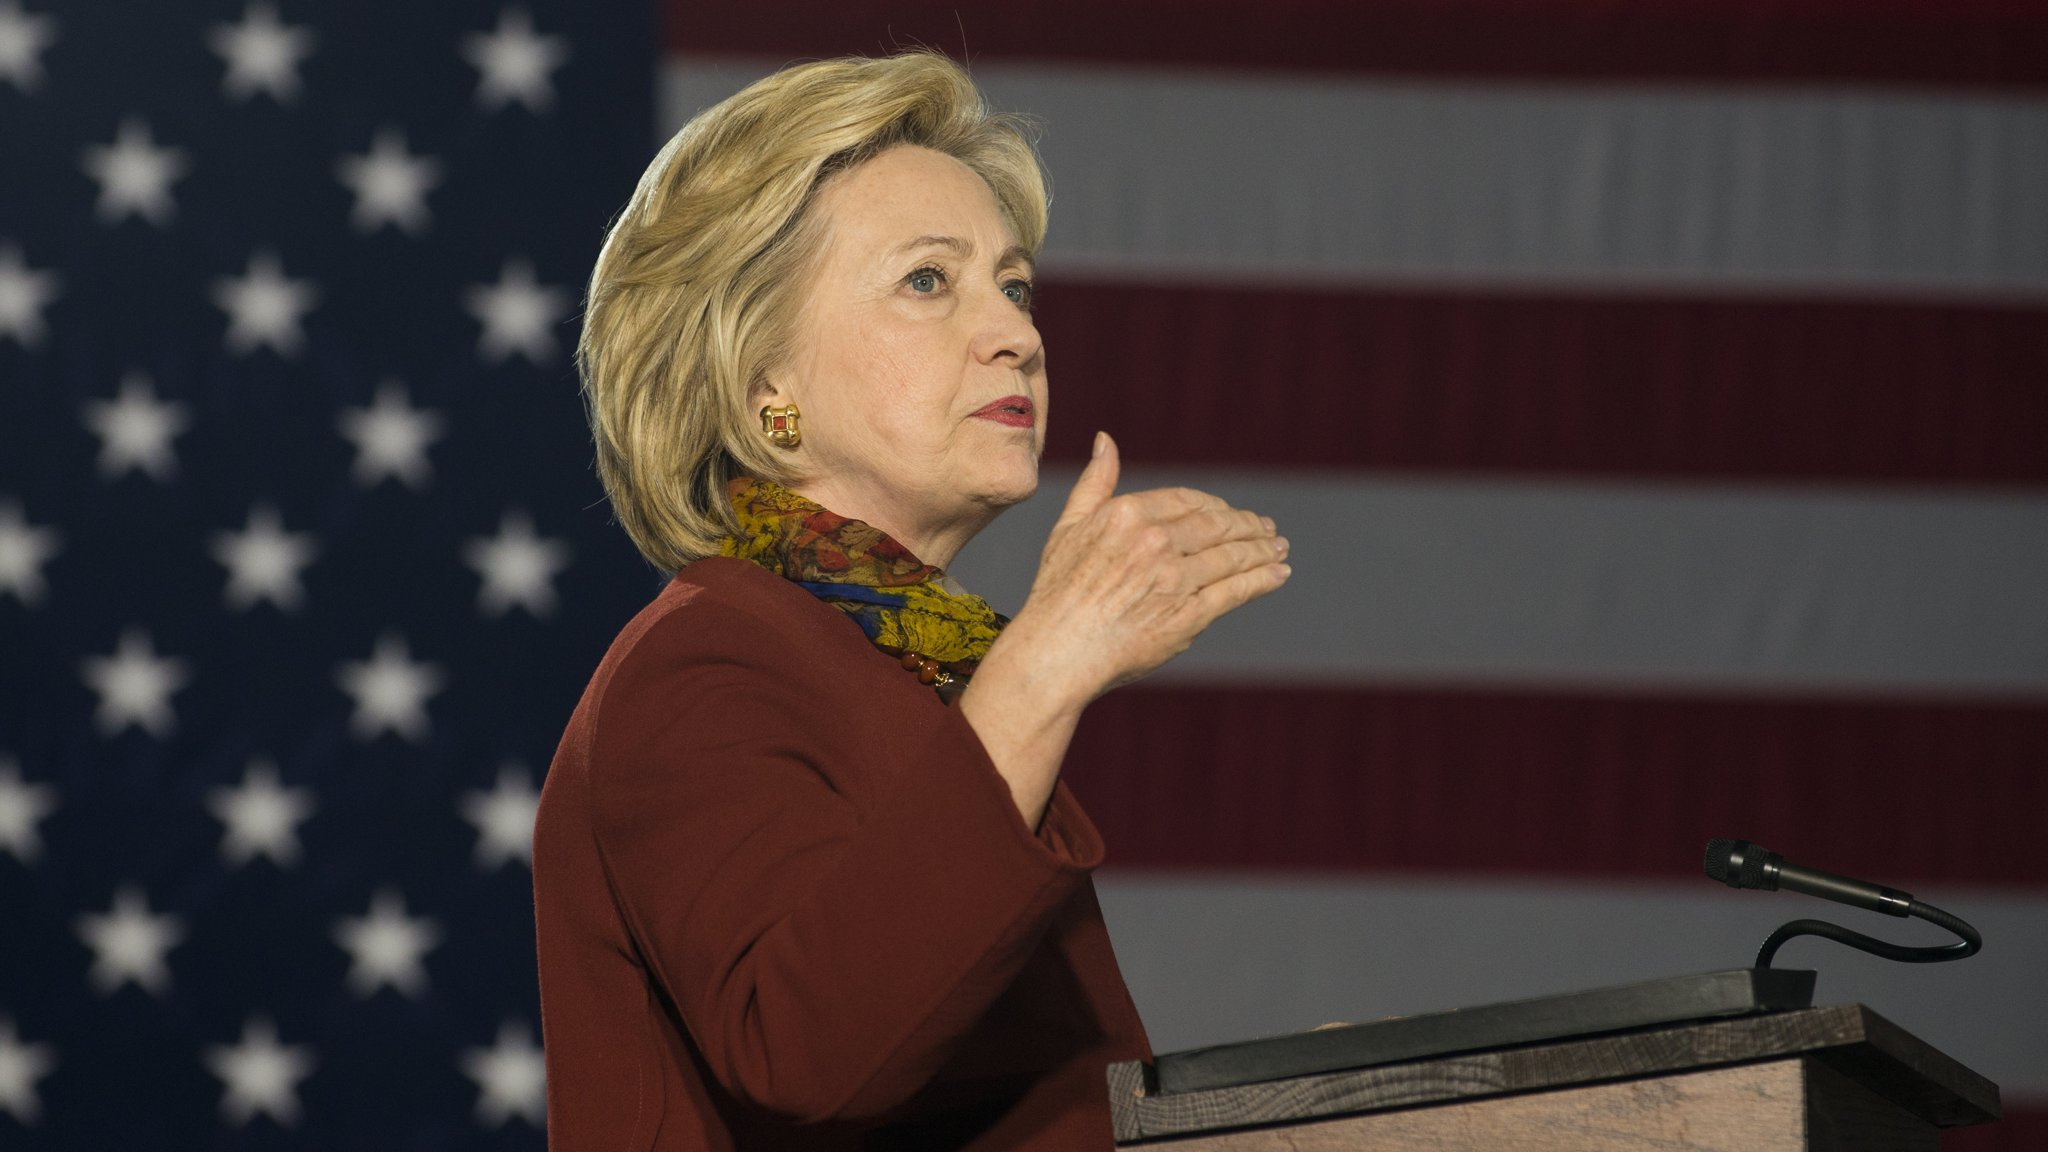 MINNEAPOLIS, MN - DECEMBER 15: Democratic presidential candidate Hillary Clinton speaks at the University of Minnesota on December 15, 2015 in Minneapolis, MN. During the speech Clinton announced her counterterrorism strategy to protect the United States if elected President. Ten Minnesota men have been arrested and charged with attempting to join the Islamic State. (Photo by Stephen Maturen/Getty Images)